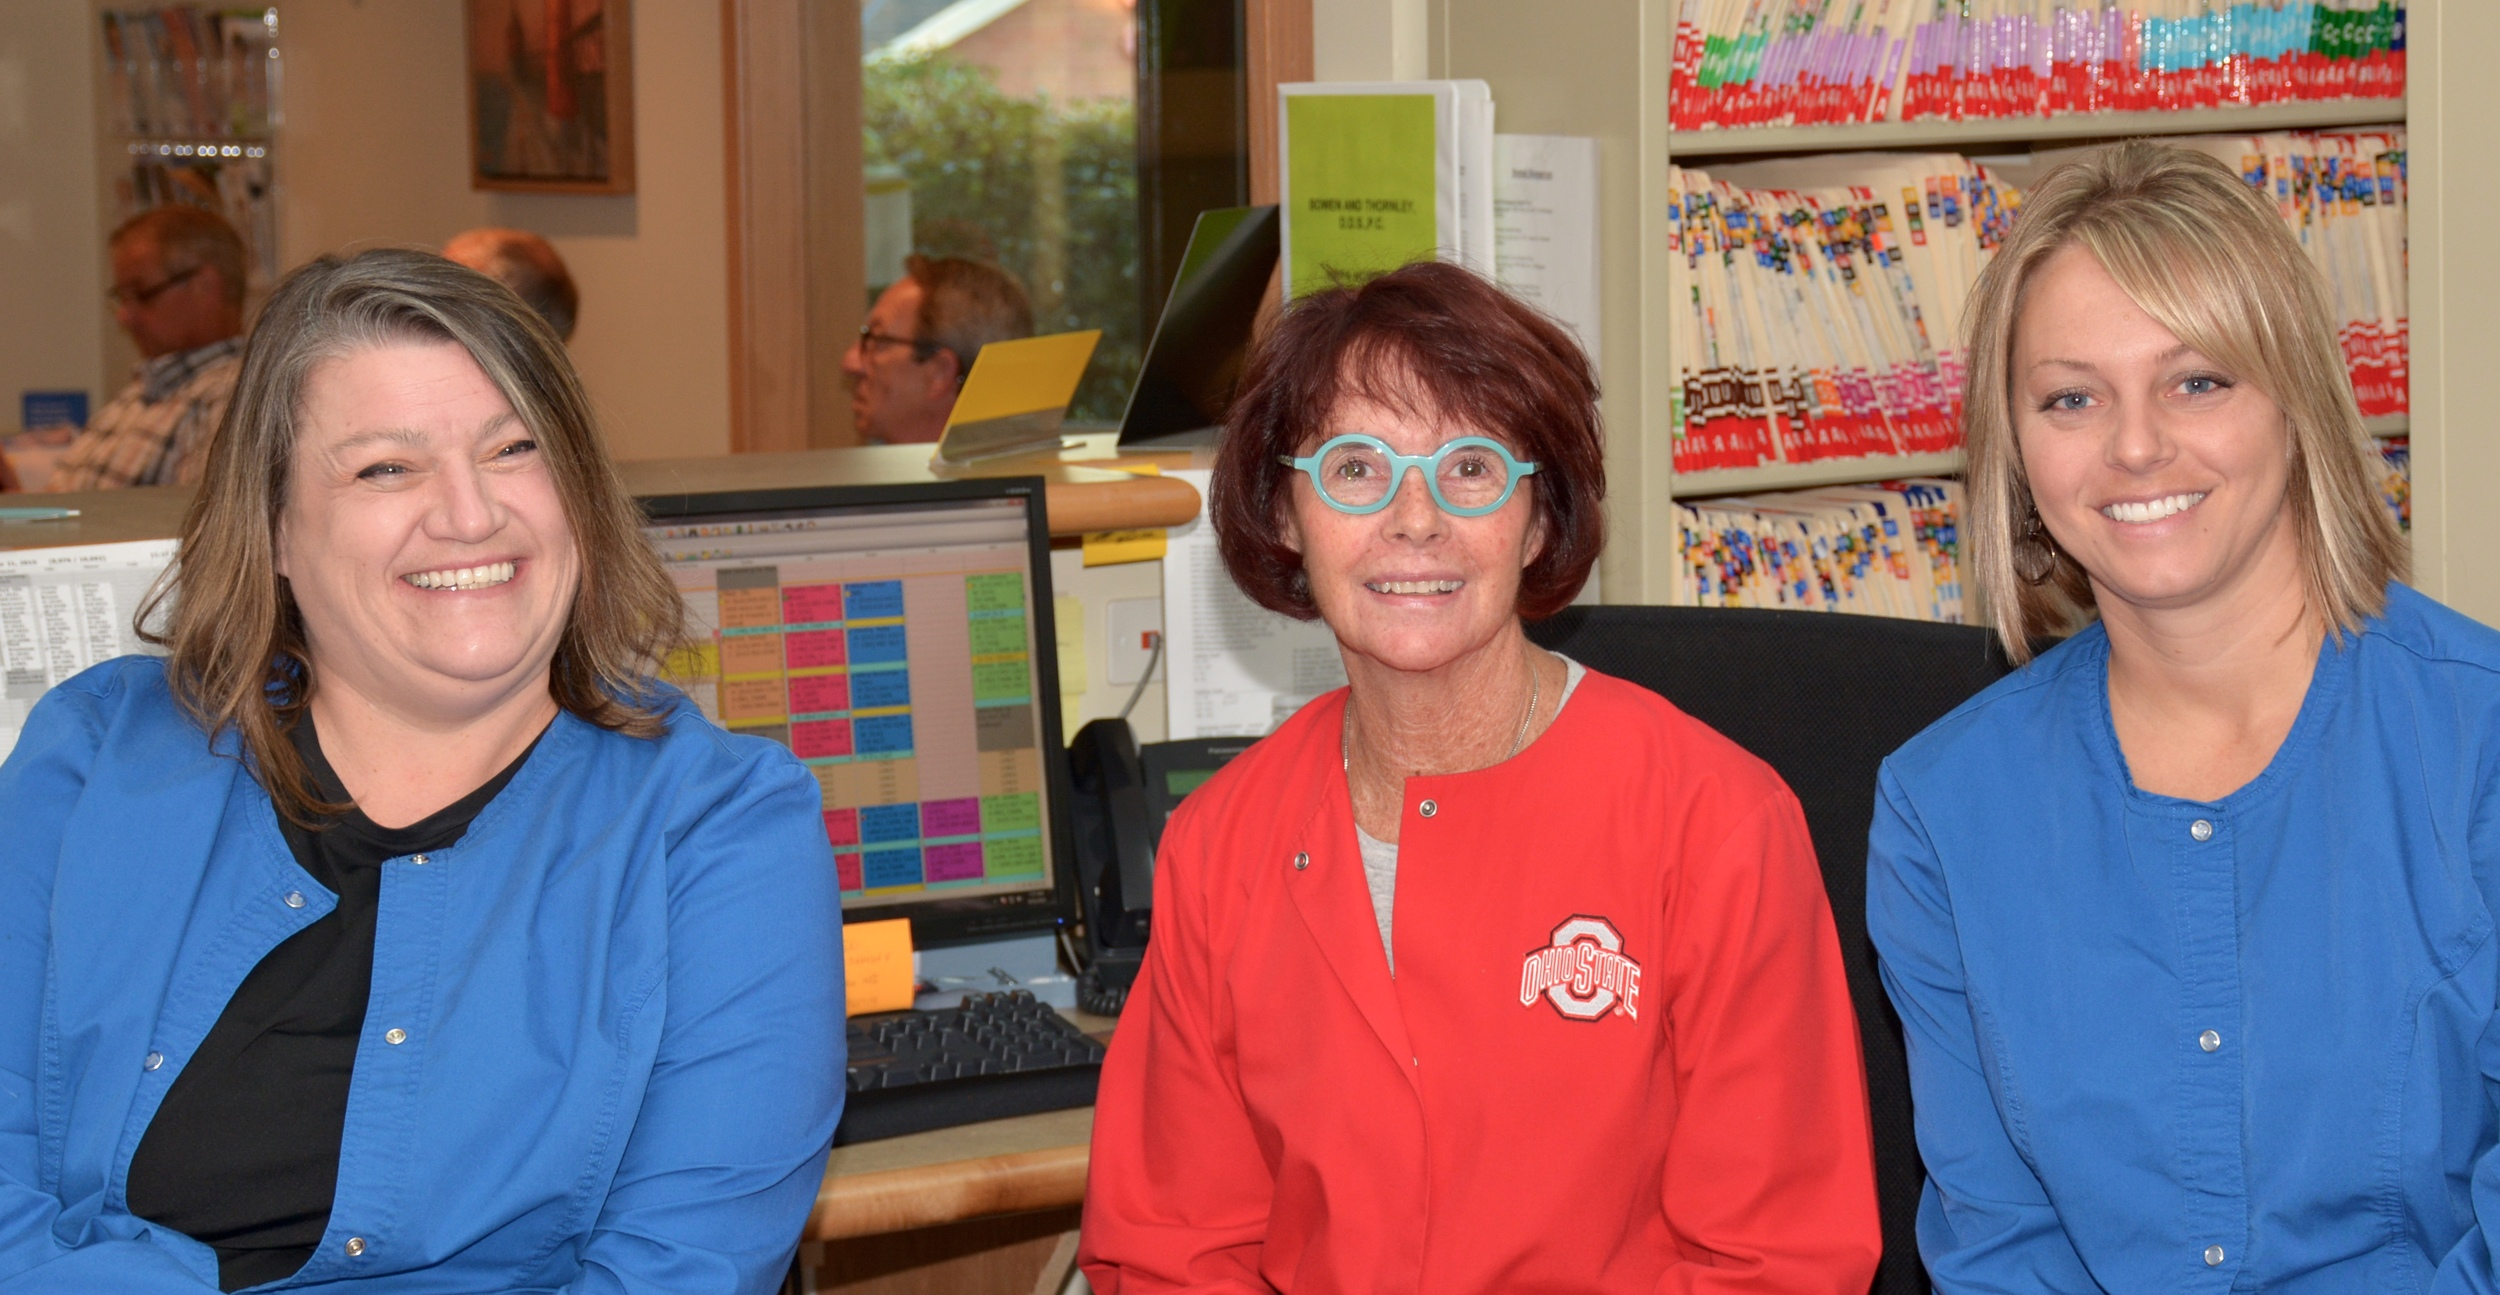 When you call into our office, you might speak with one of these lovely ladies;Beth, Jill or Liz.